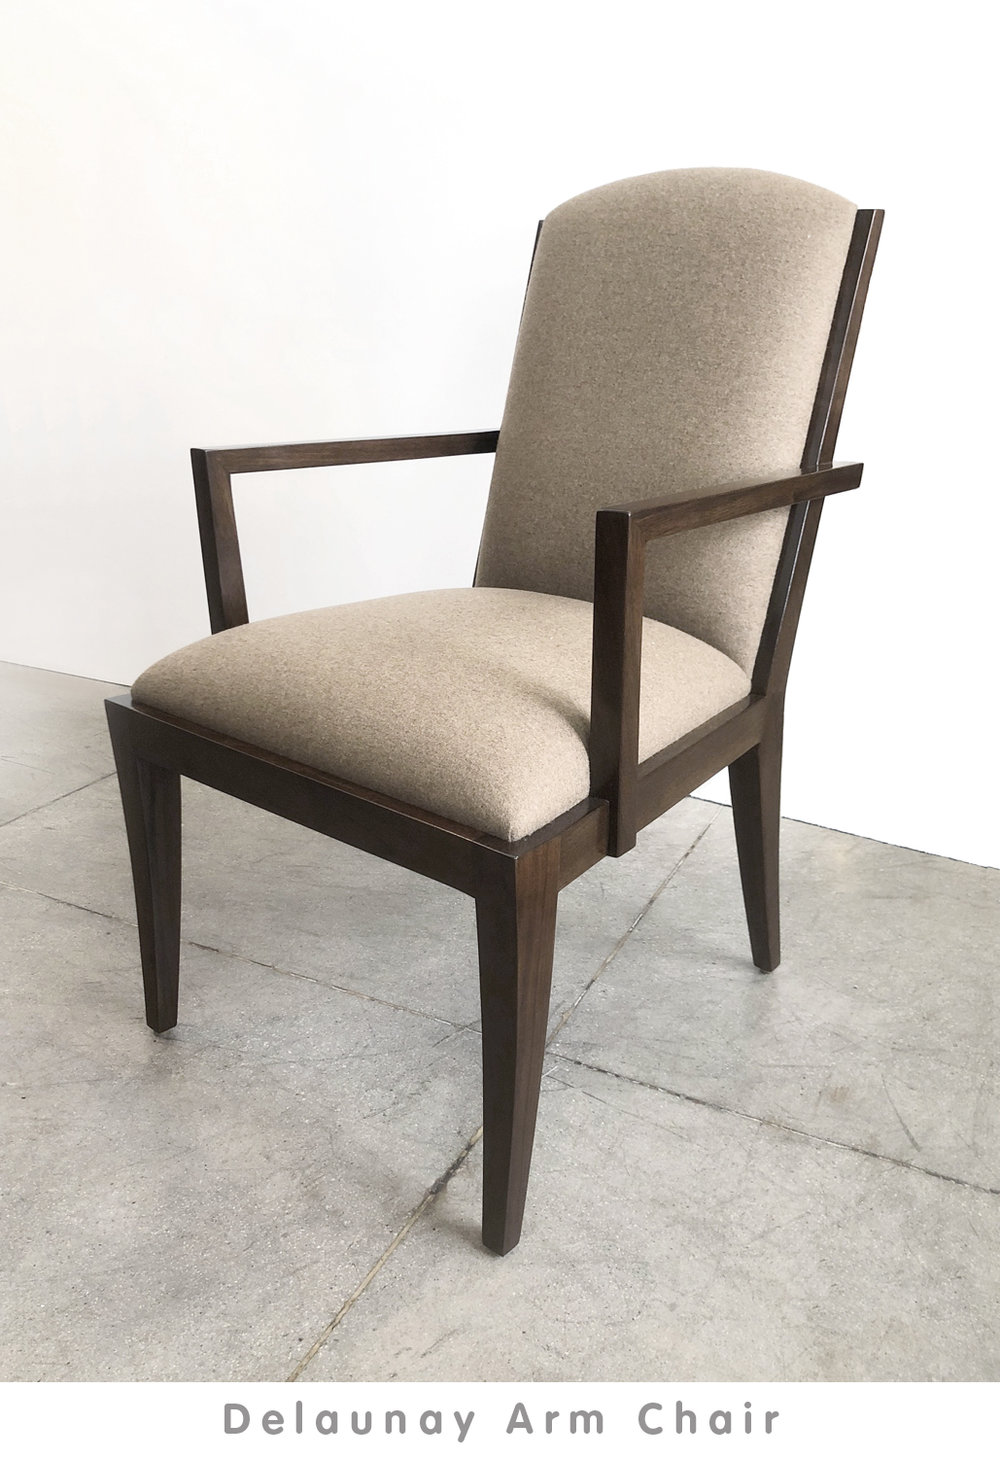 view: Delaunay Arm Chair Catalog Page